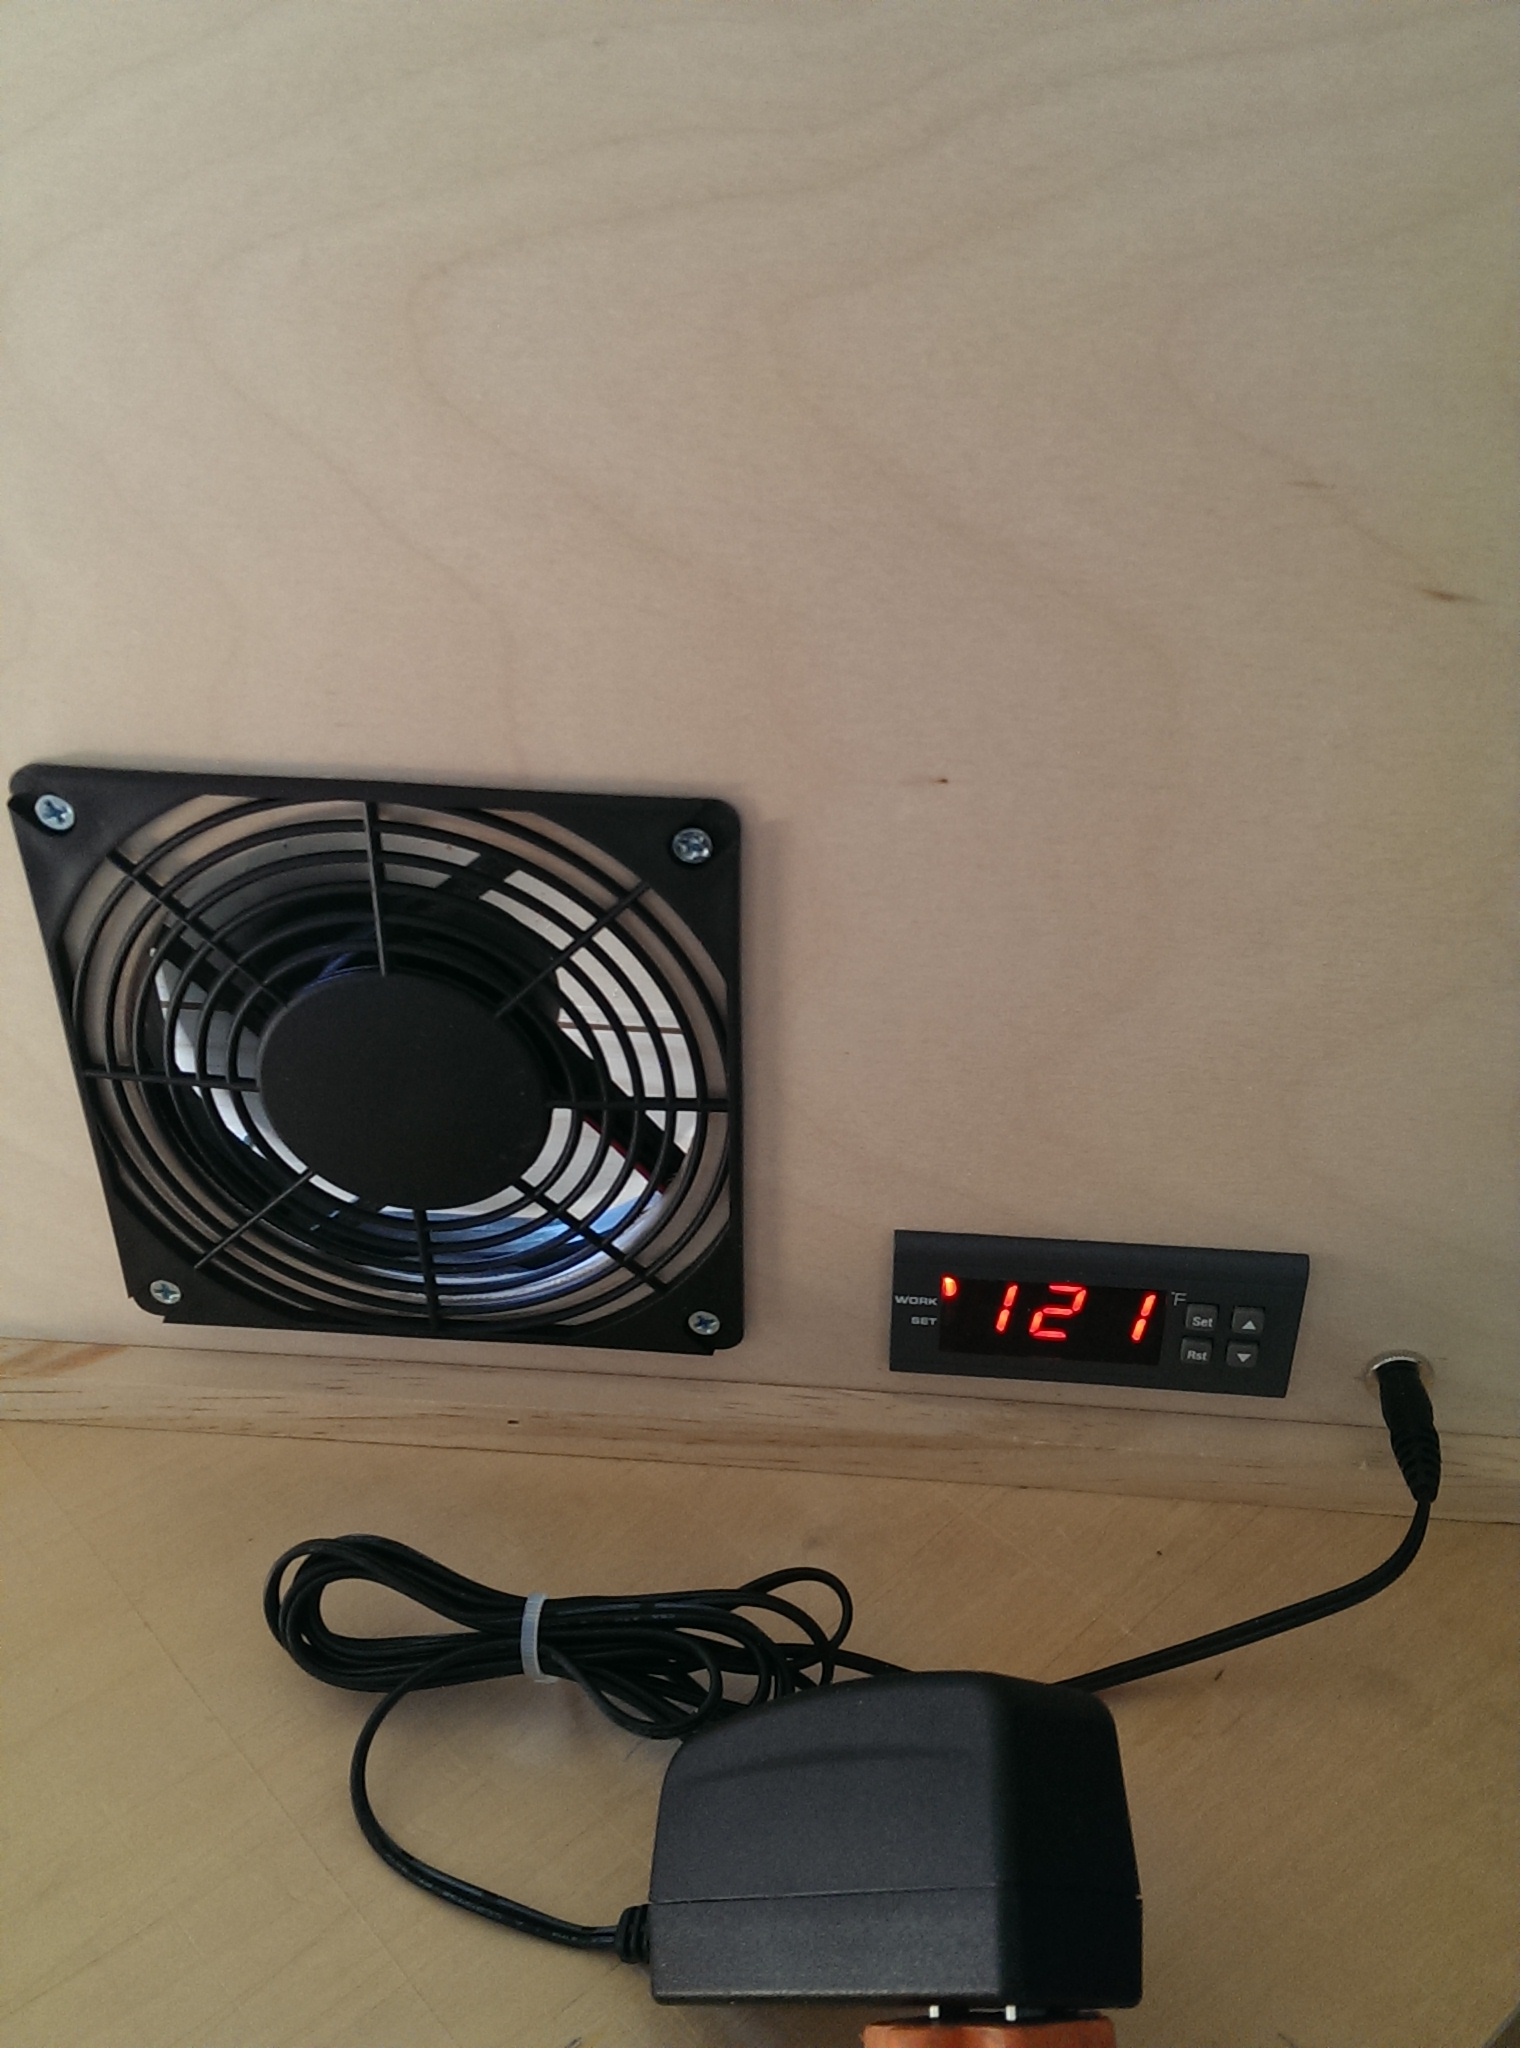 Solar Window Heater Temperature Switch